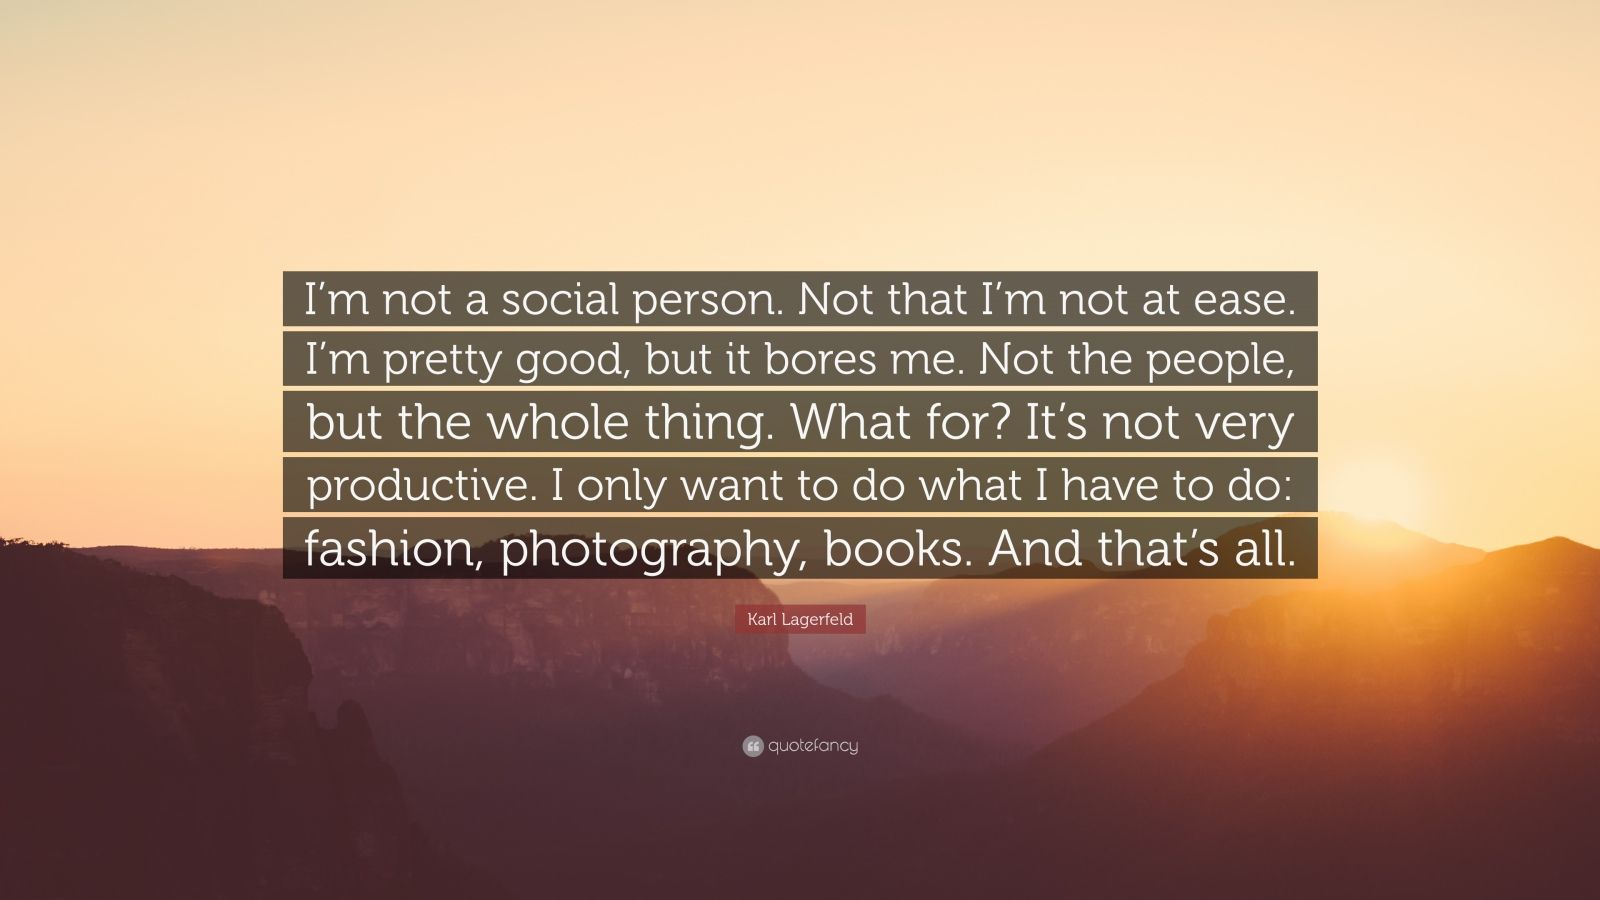 """Karl Lagerfeld Quote: """"I'm not a social person. Not that I'm not at ease. I'm pretty good, but it bores me. Not the people, but the whole thing. What for? It's not very productive. I only want to do what I have to do: fashion, photography, books. And that's all."""""""